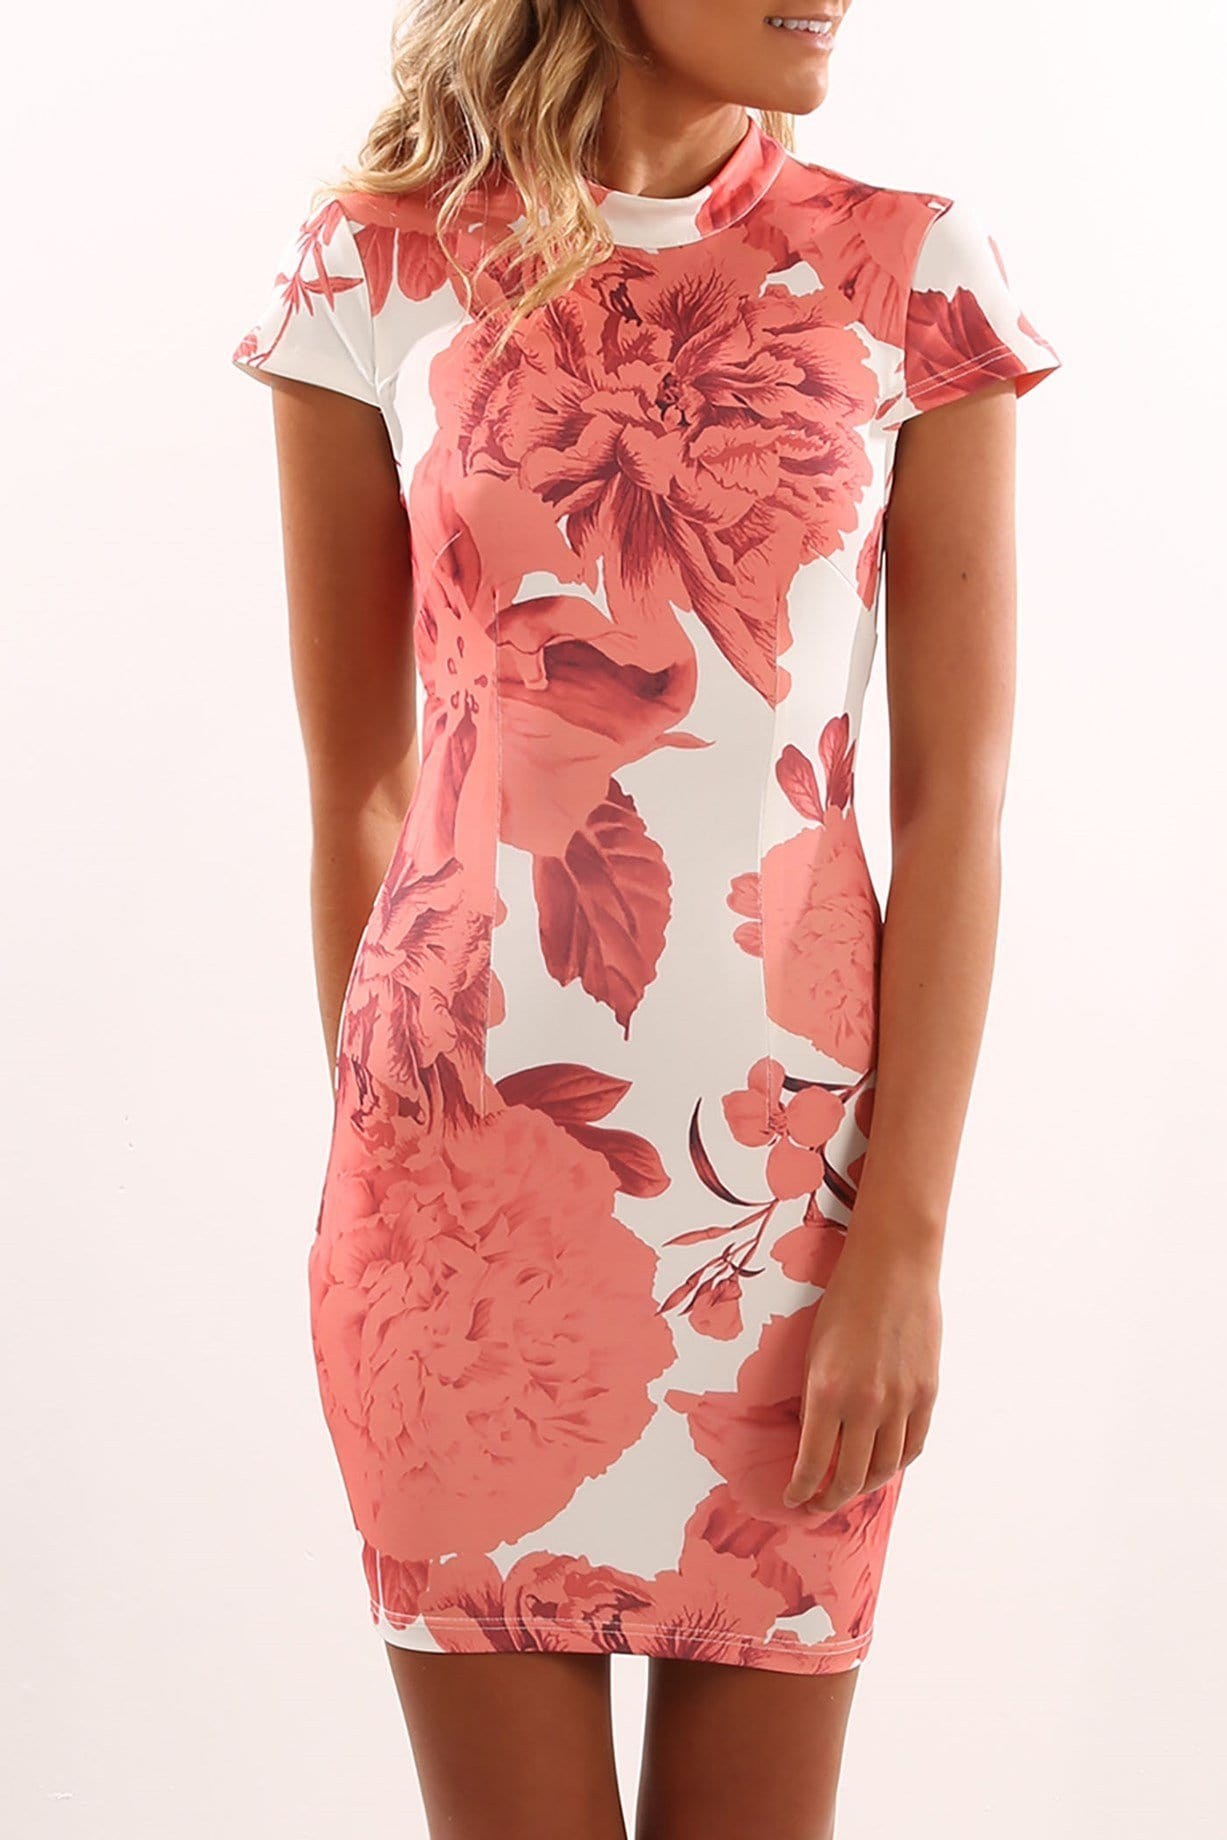 Fiery Flower Dress White